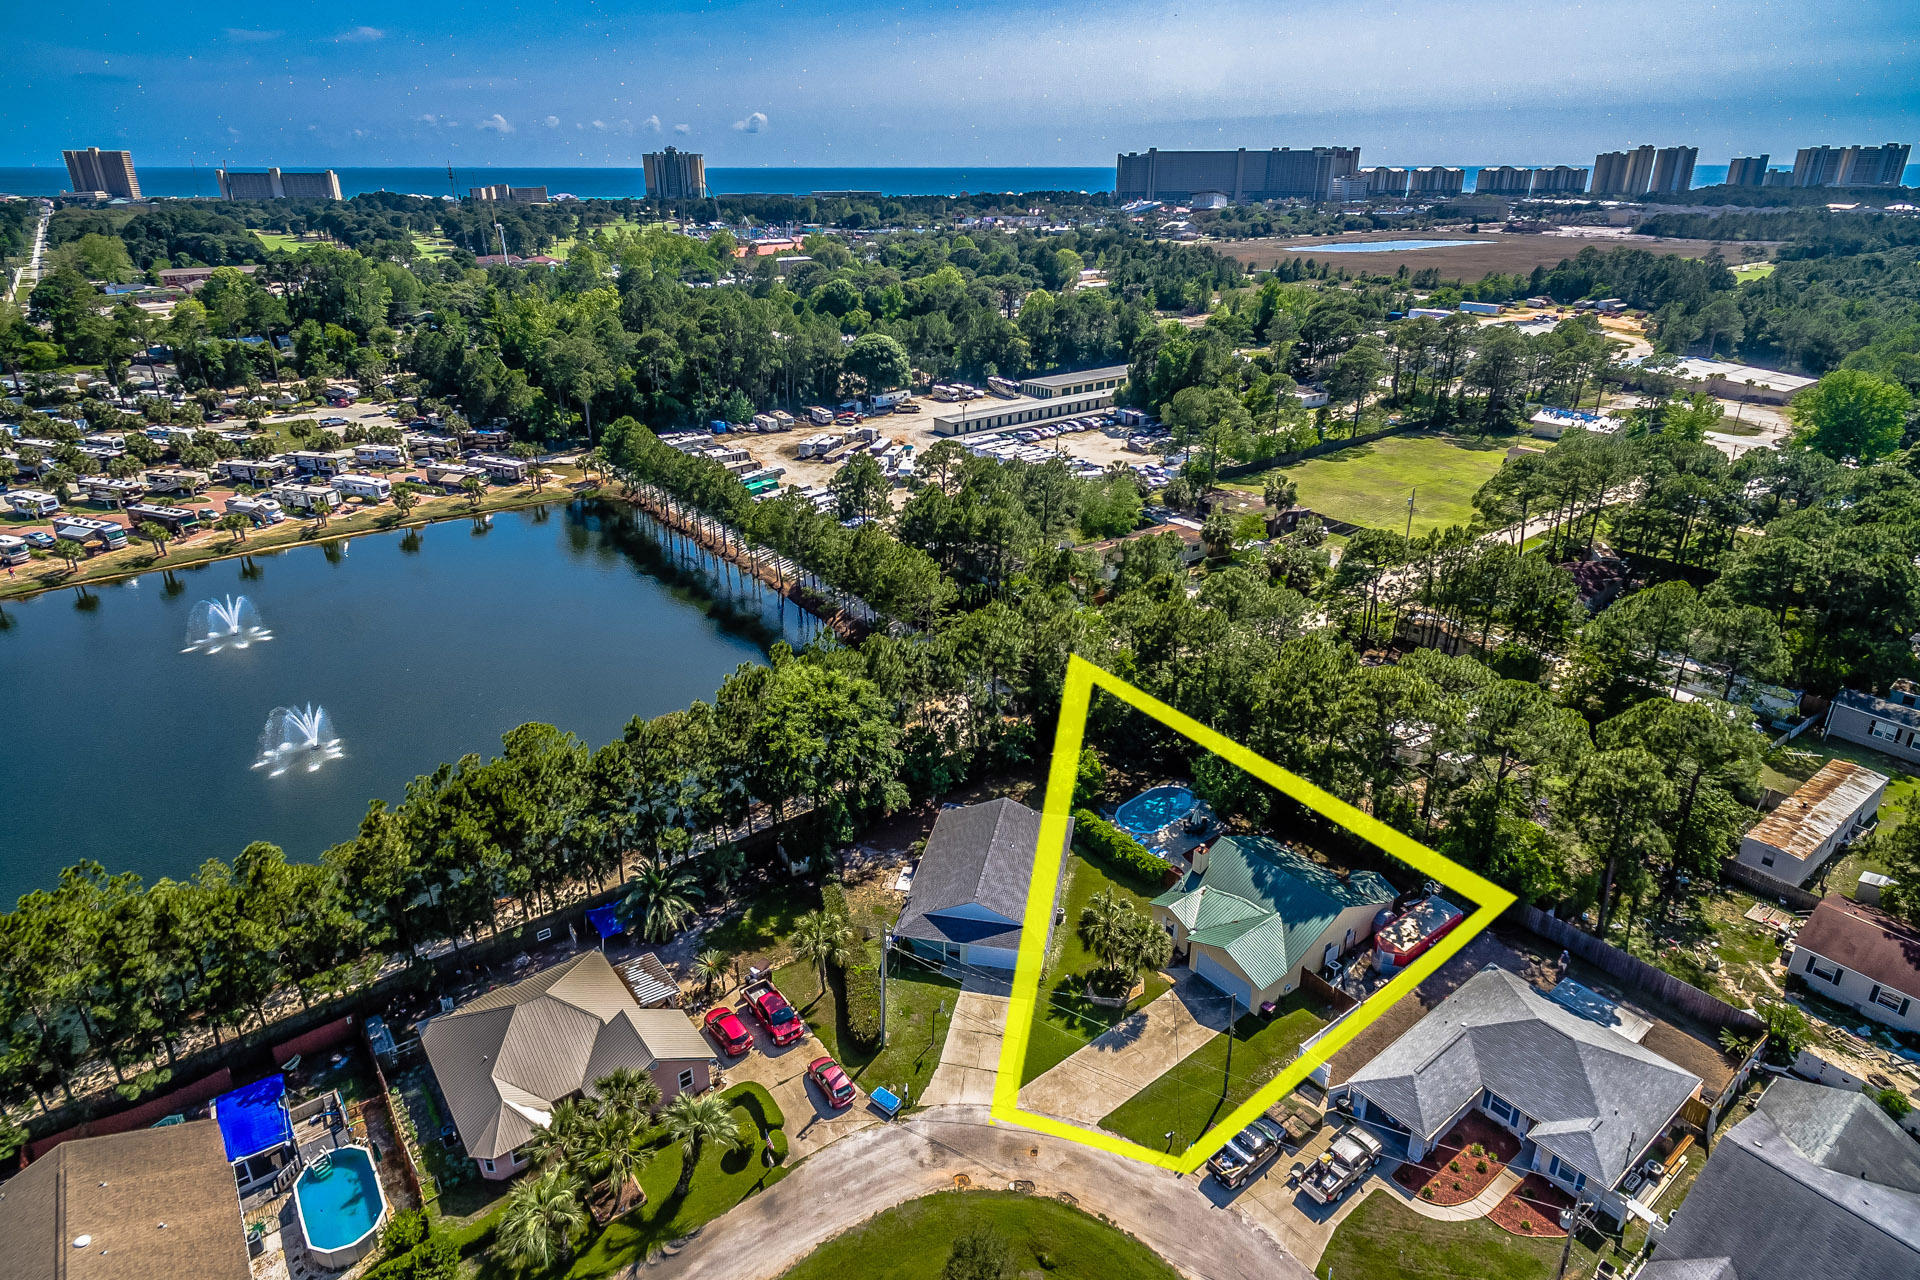 Welcome to 9217 Faith Lane in Panama City Beach, Florida!  A true rental magnate that has consistently performed and in 2017 put out a whopping $54k+ in gross rental revenue!!  The current owners have set this up as a rental powerhouse adding all of the clutch amenities necessary to keep guests coming consistently and repeatedly.  The home is located on one of the largest lots in the community and the location off of Allison Ave allows for convenient beach access as well as close proximity to area attractions along Front Beach Road & Thomas Drive.  This home is being offered individually as well as being offered within a package deal of 10 homes that produced $478,000 in gross revenue.  This is not a home to overlook in today's market so come get a glimpse while you can.  P&L available!